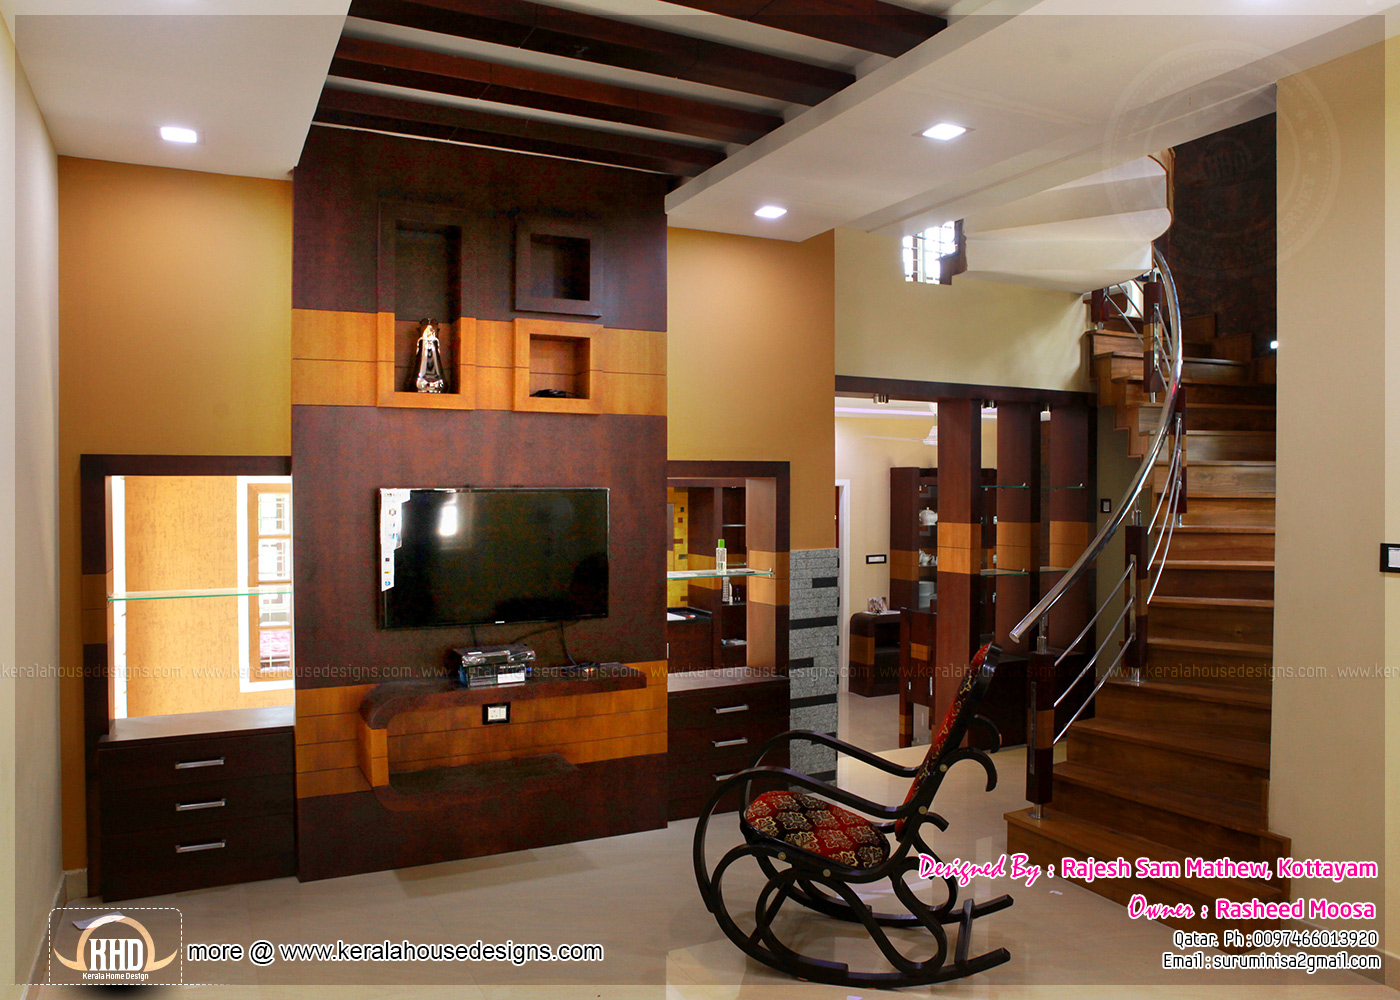 Kerala interior design with photos kerala home design for Interior designs in house